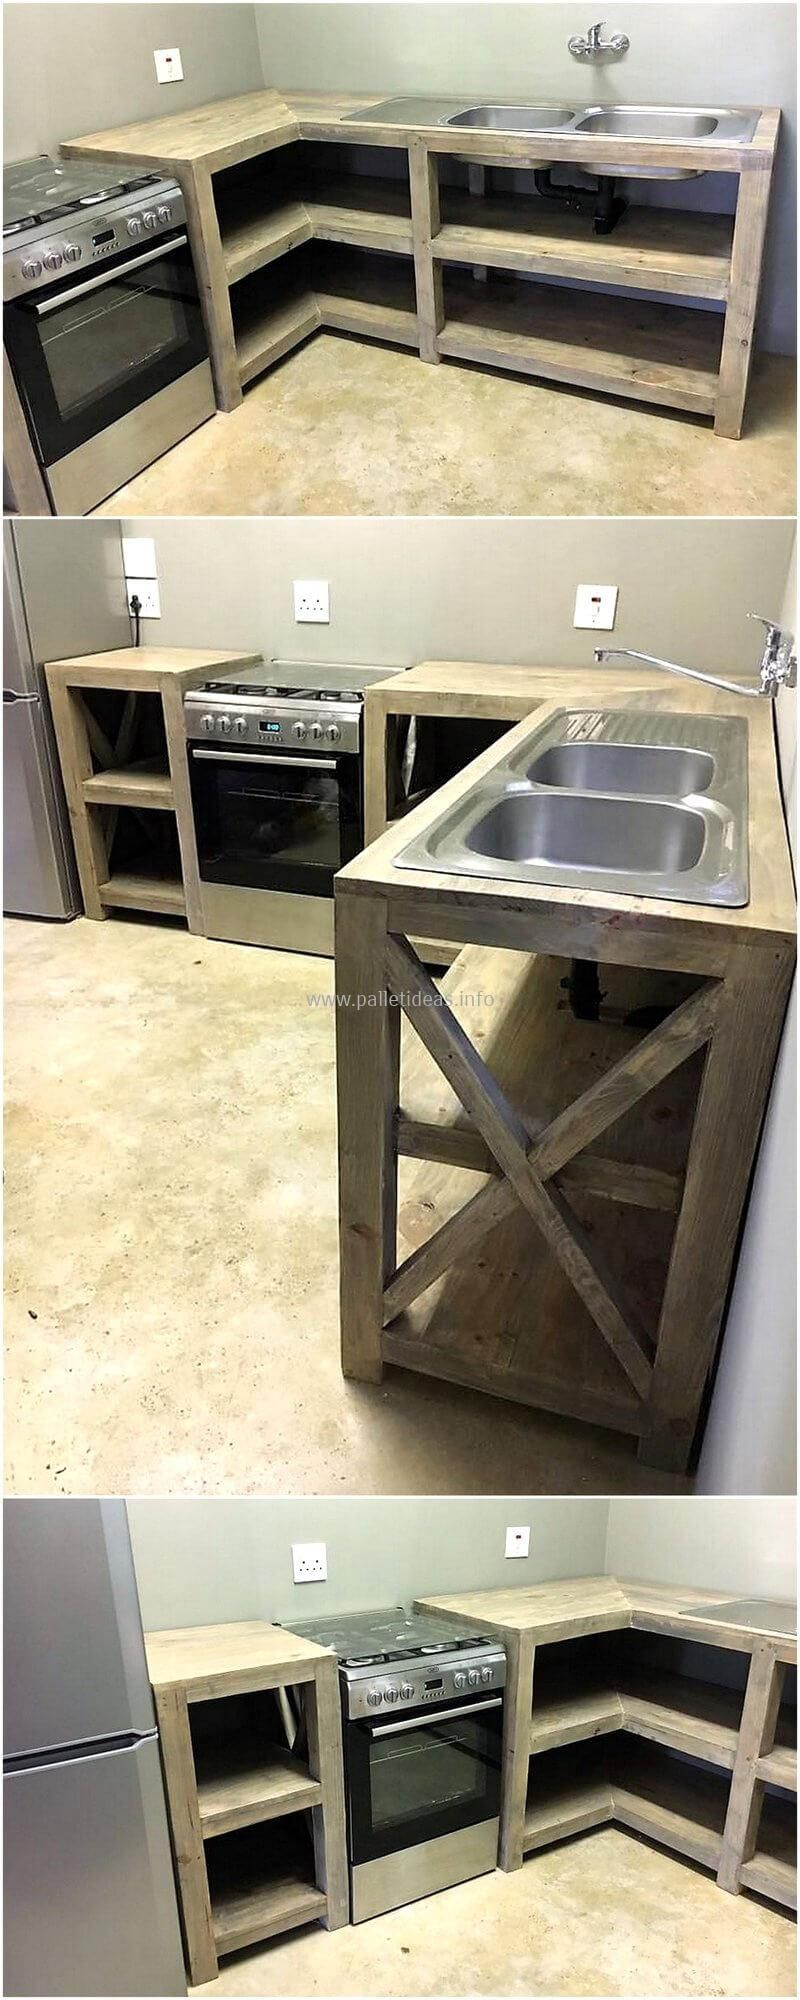 recycled wood pallet kitchen idea recycled wood